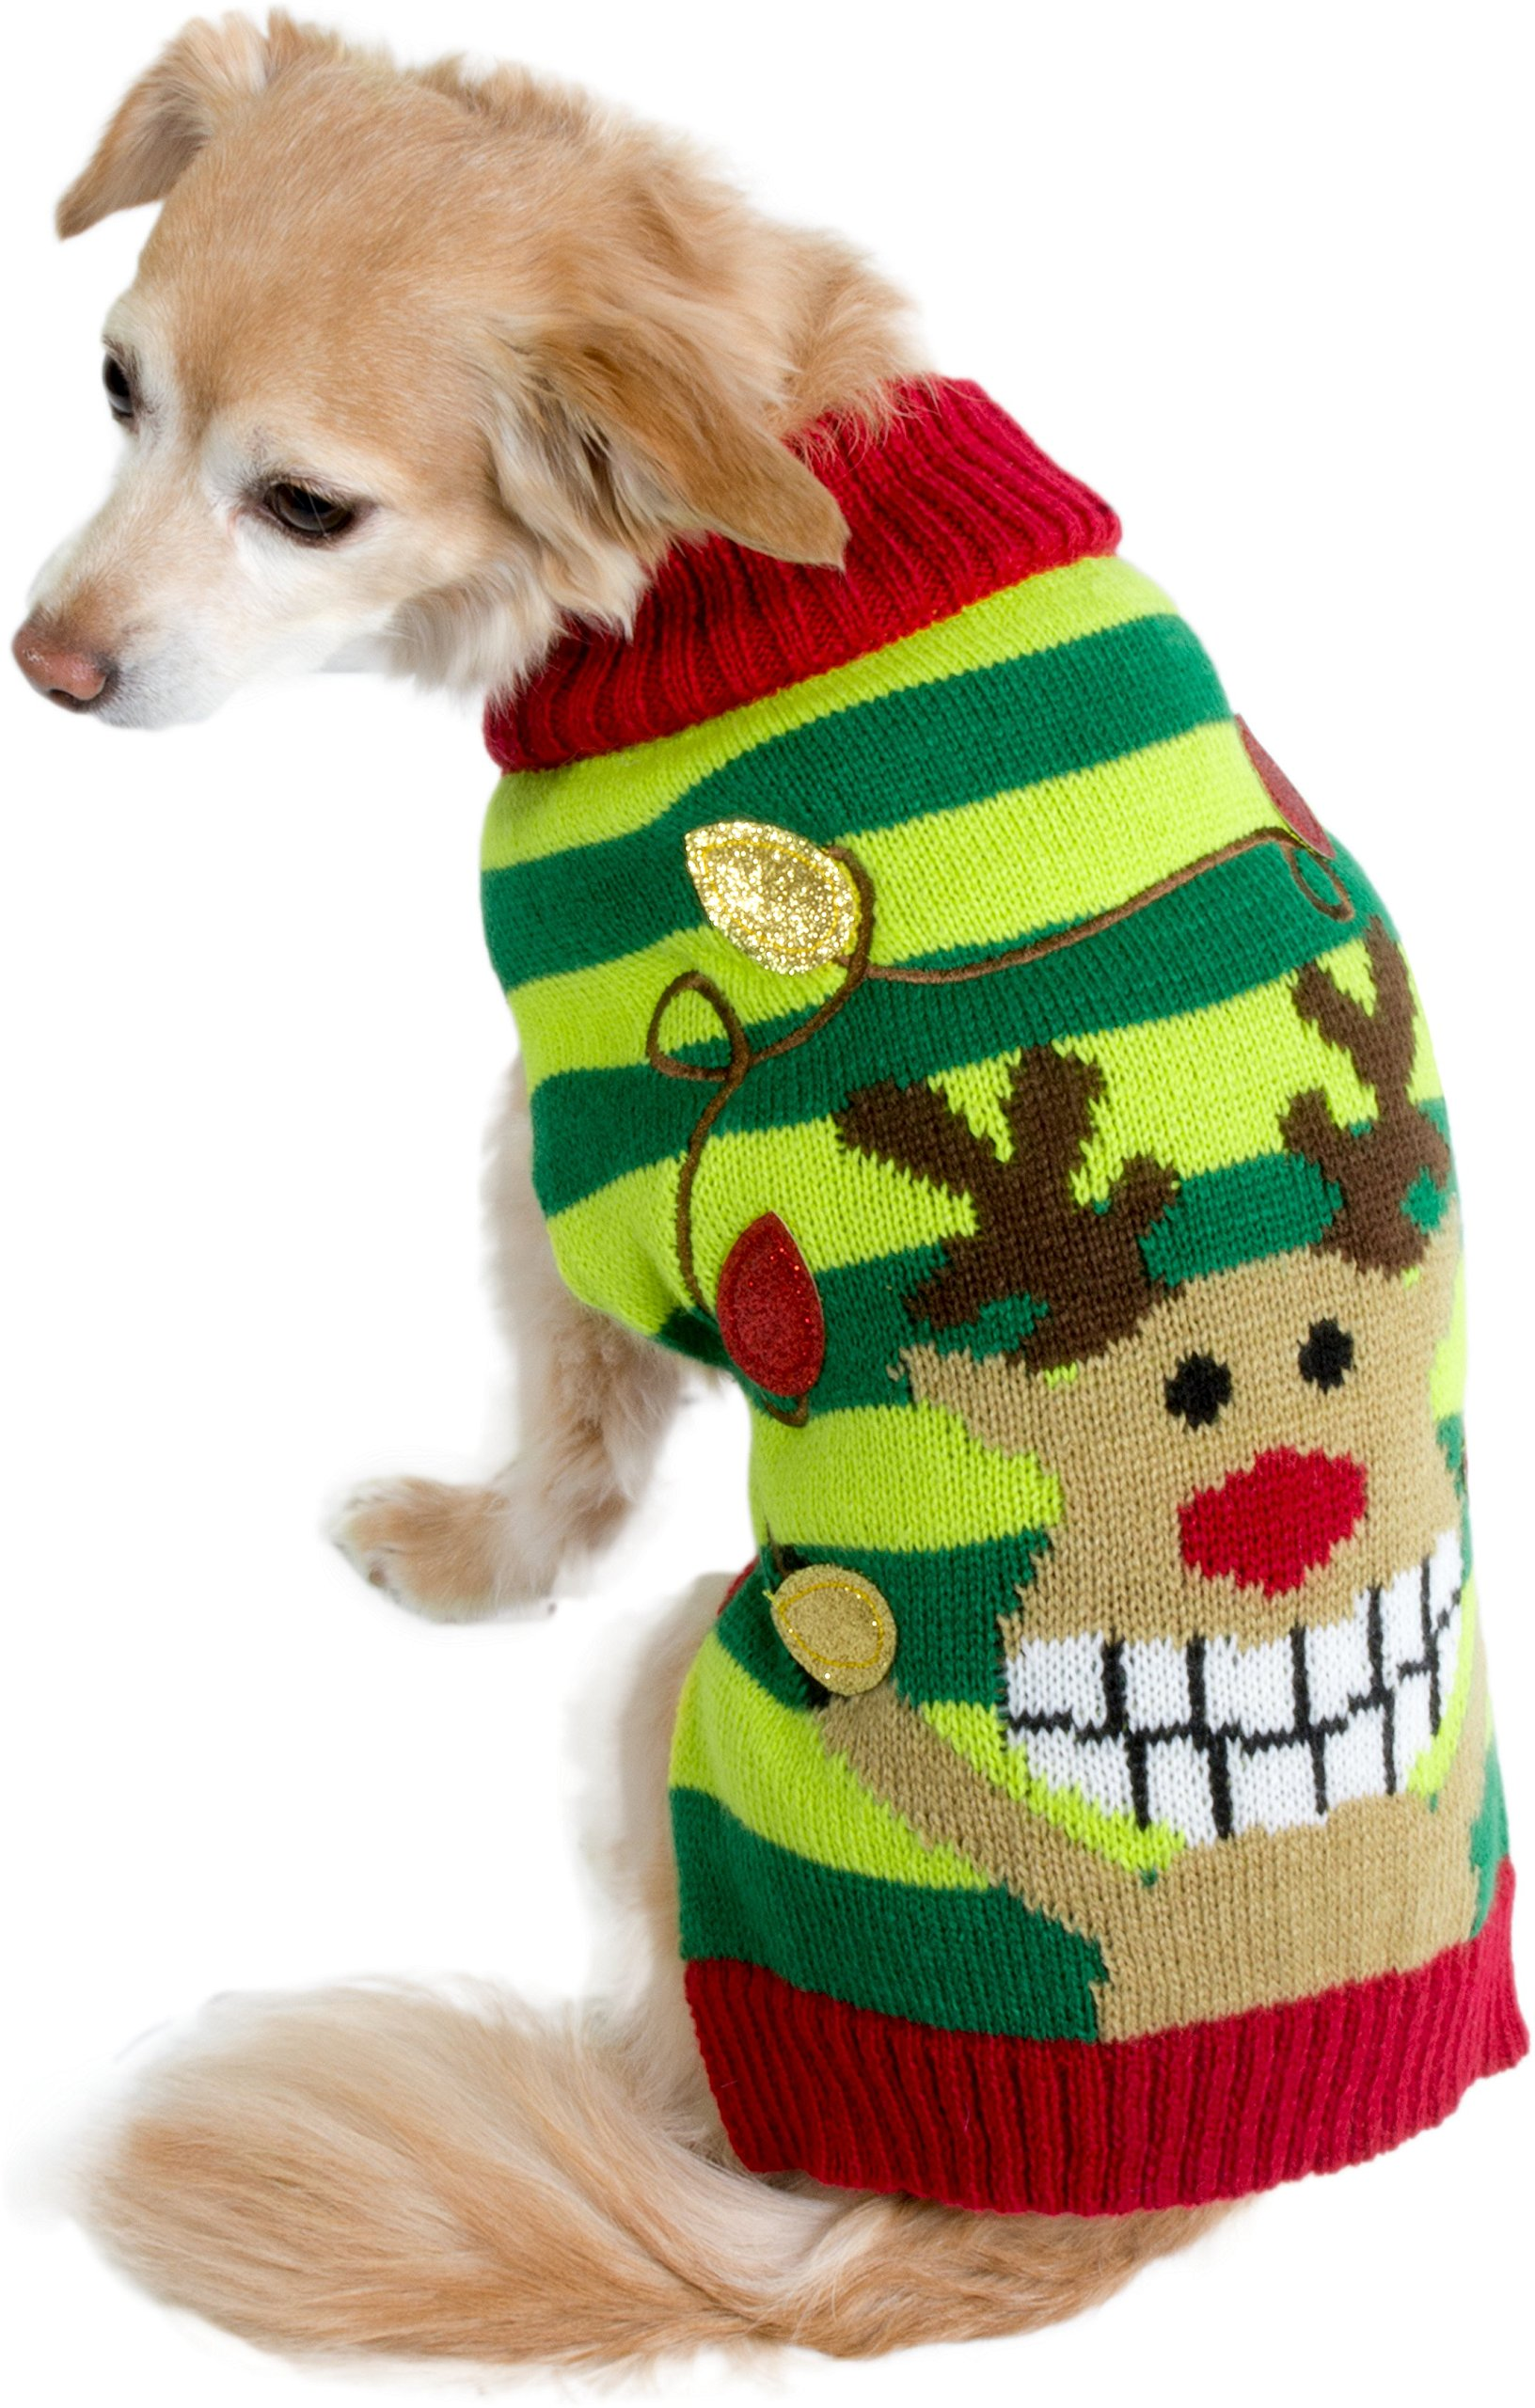 Reindeer Cozy Knit Winter Ugly Sweater Furry Stripe Pet Dog Cat Christmas Clothes Costume Apparel Small